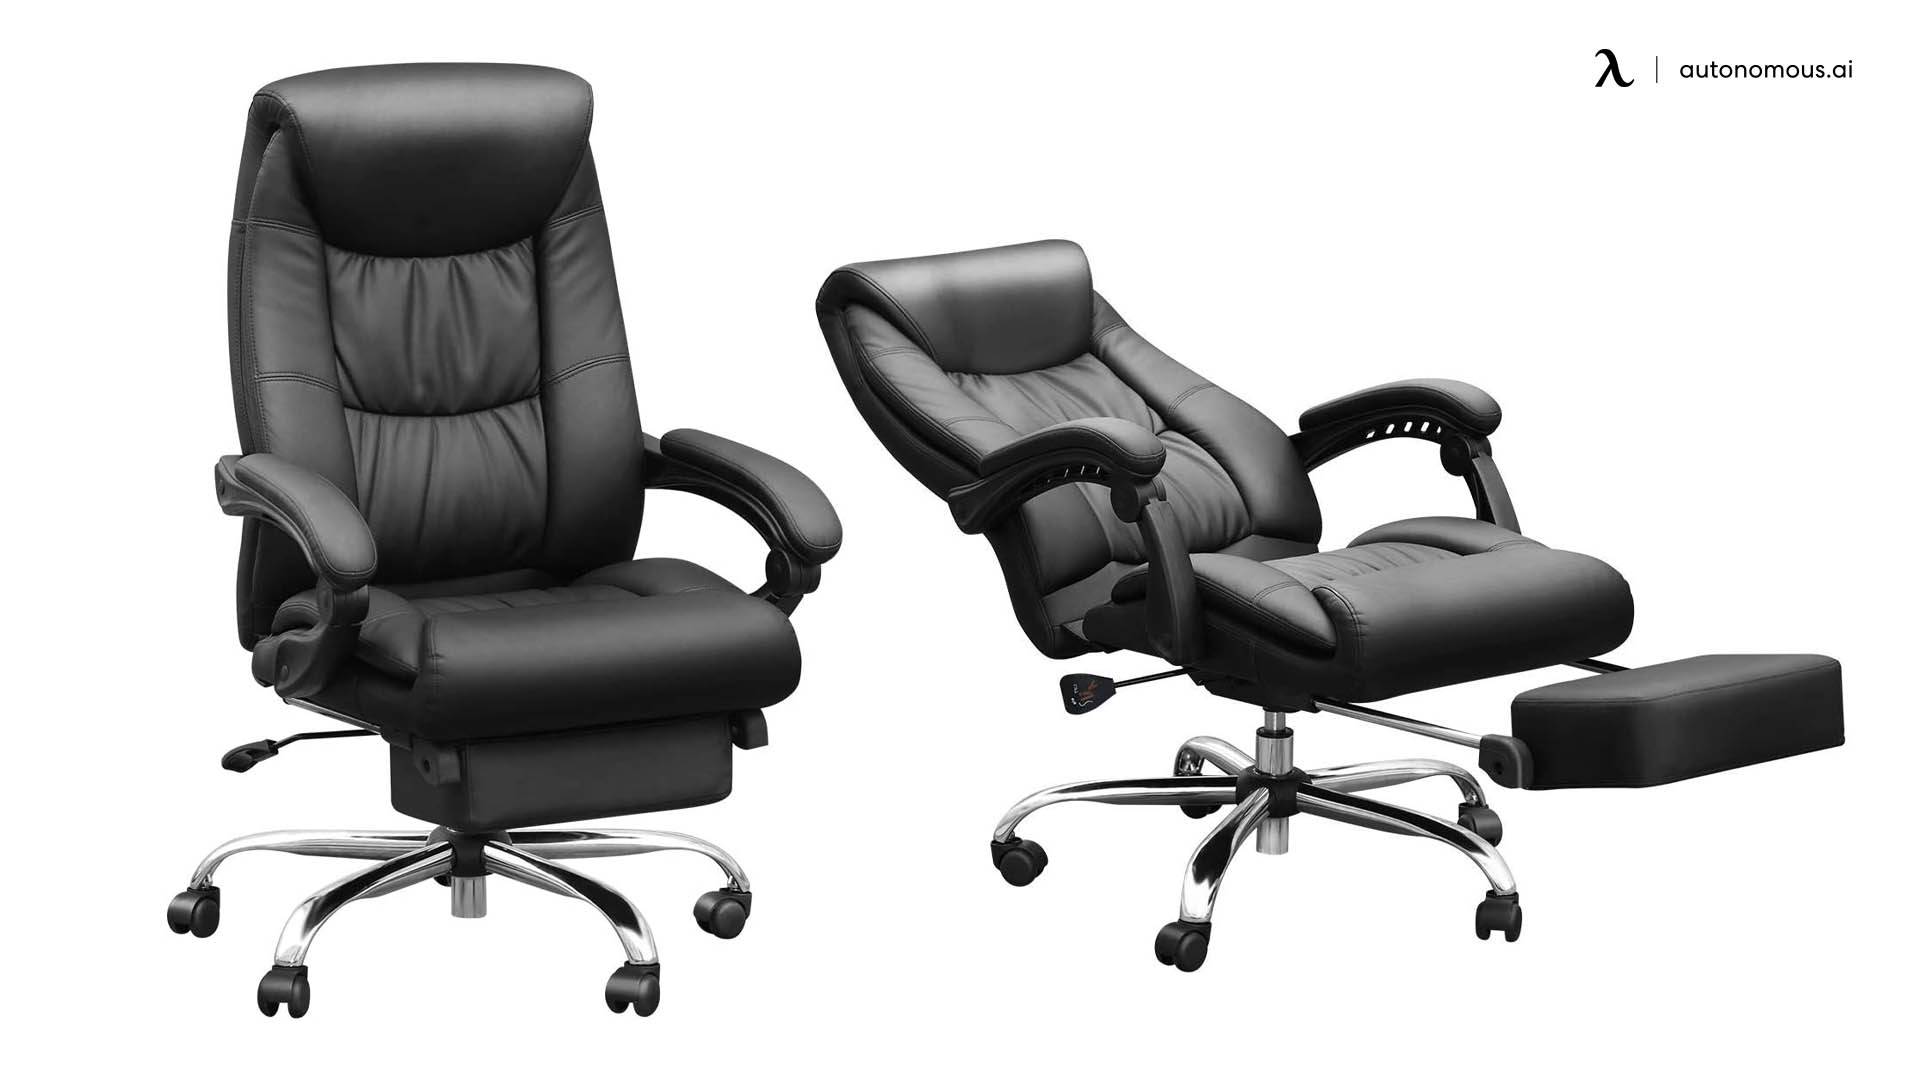 Duramount Reclining Office Chair with Footrest